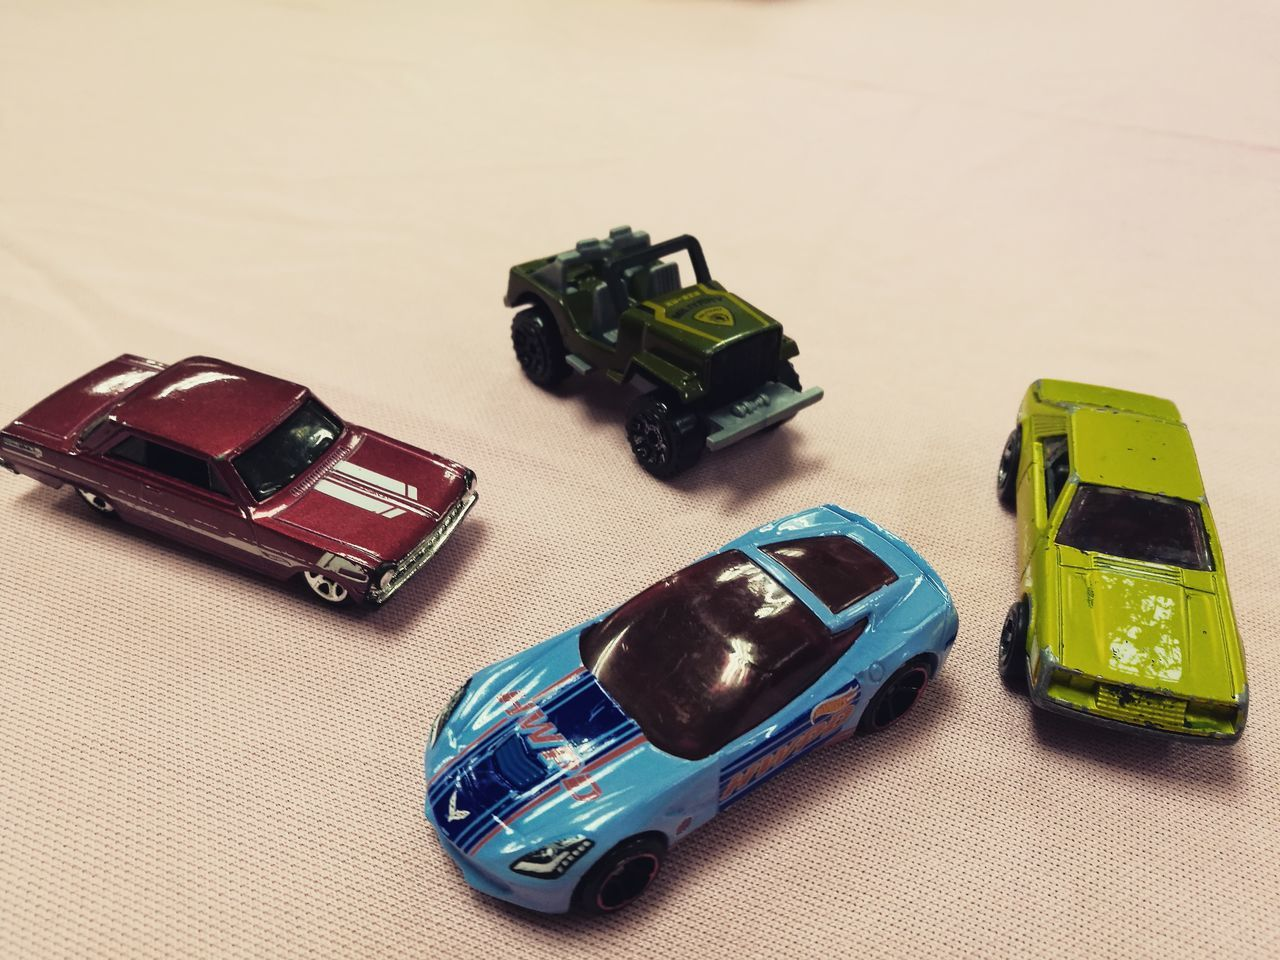 still life, toy car, toy, no people, high angle view, car, table, indoors, communication, technology, studio shot, wireless technology, white background, close-up, day